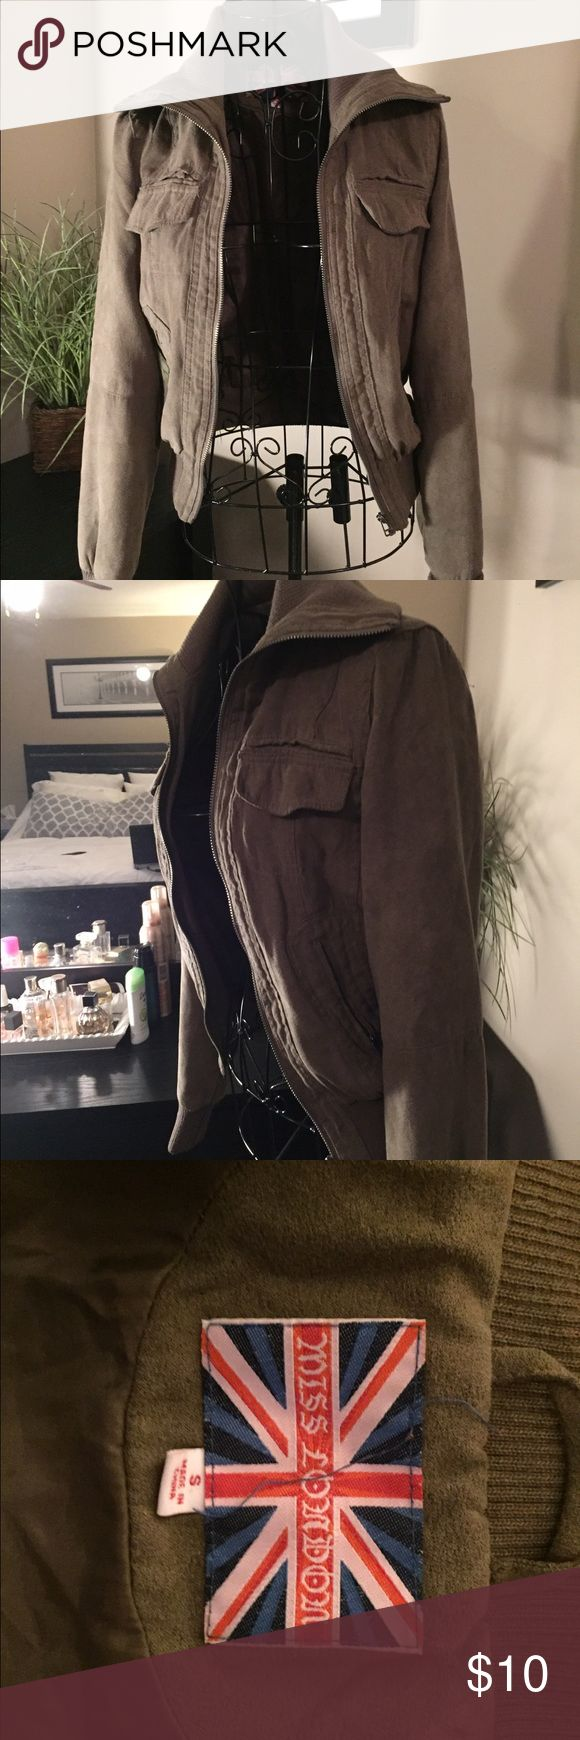 Army green bomber jacket Cute for spring or fall. Army green bomber jacket. Size small. Jackets & Coats Utility Jackets